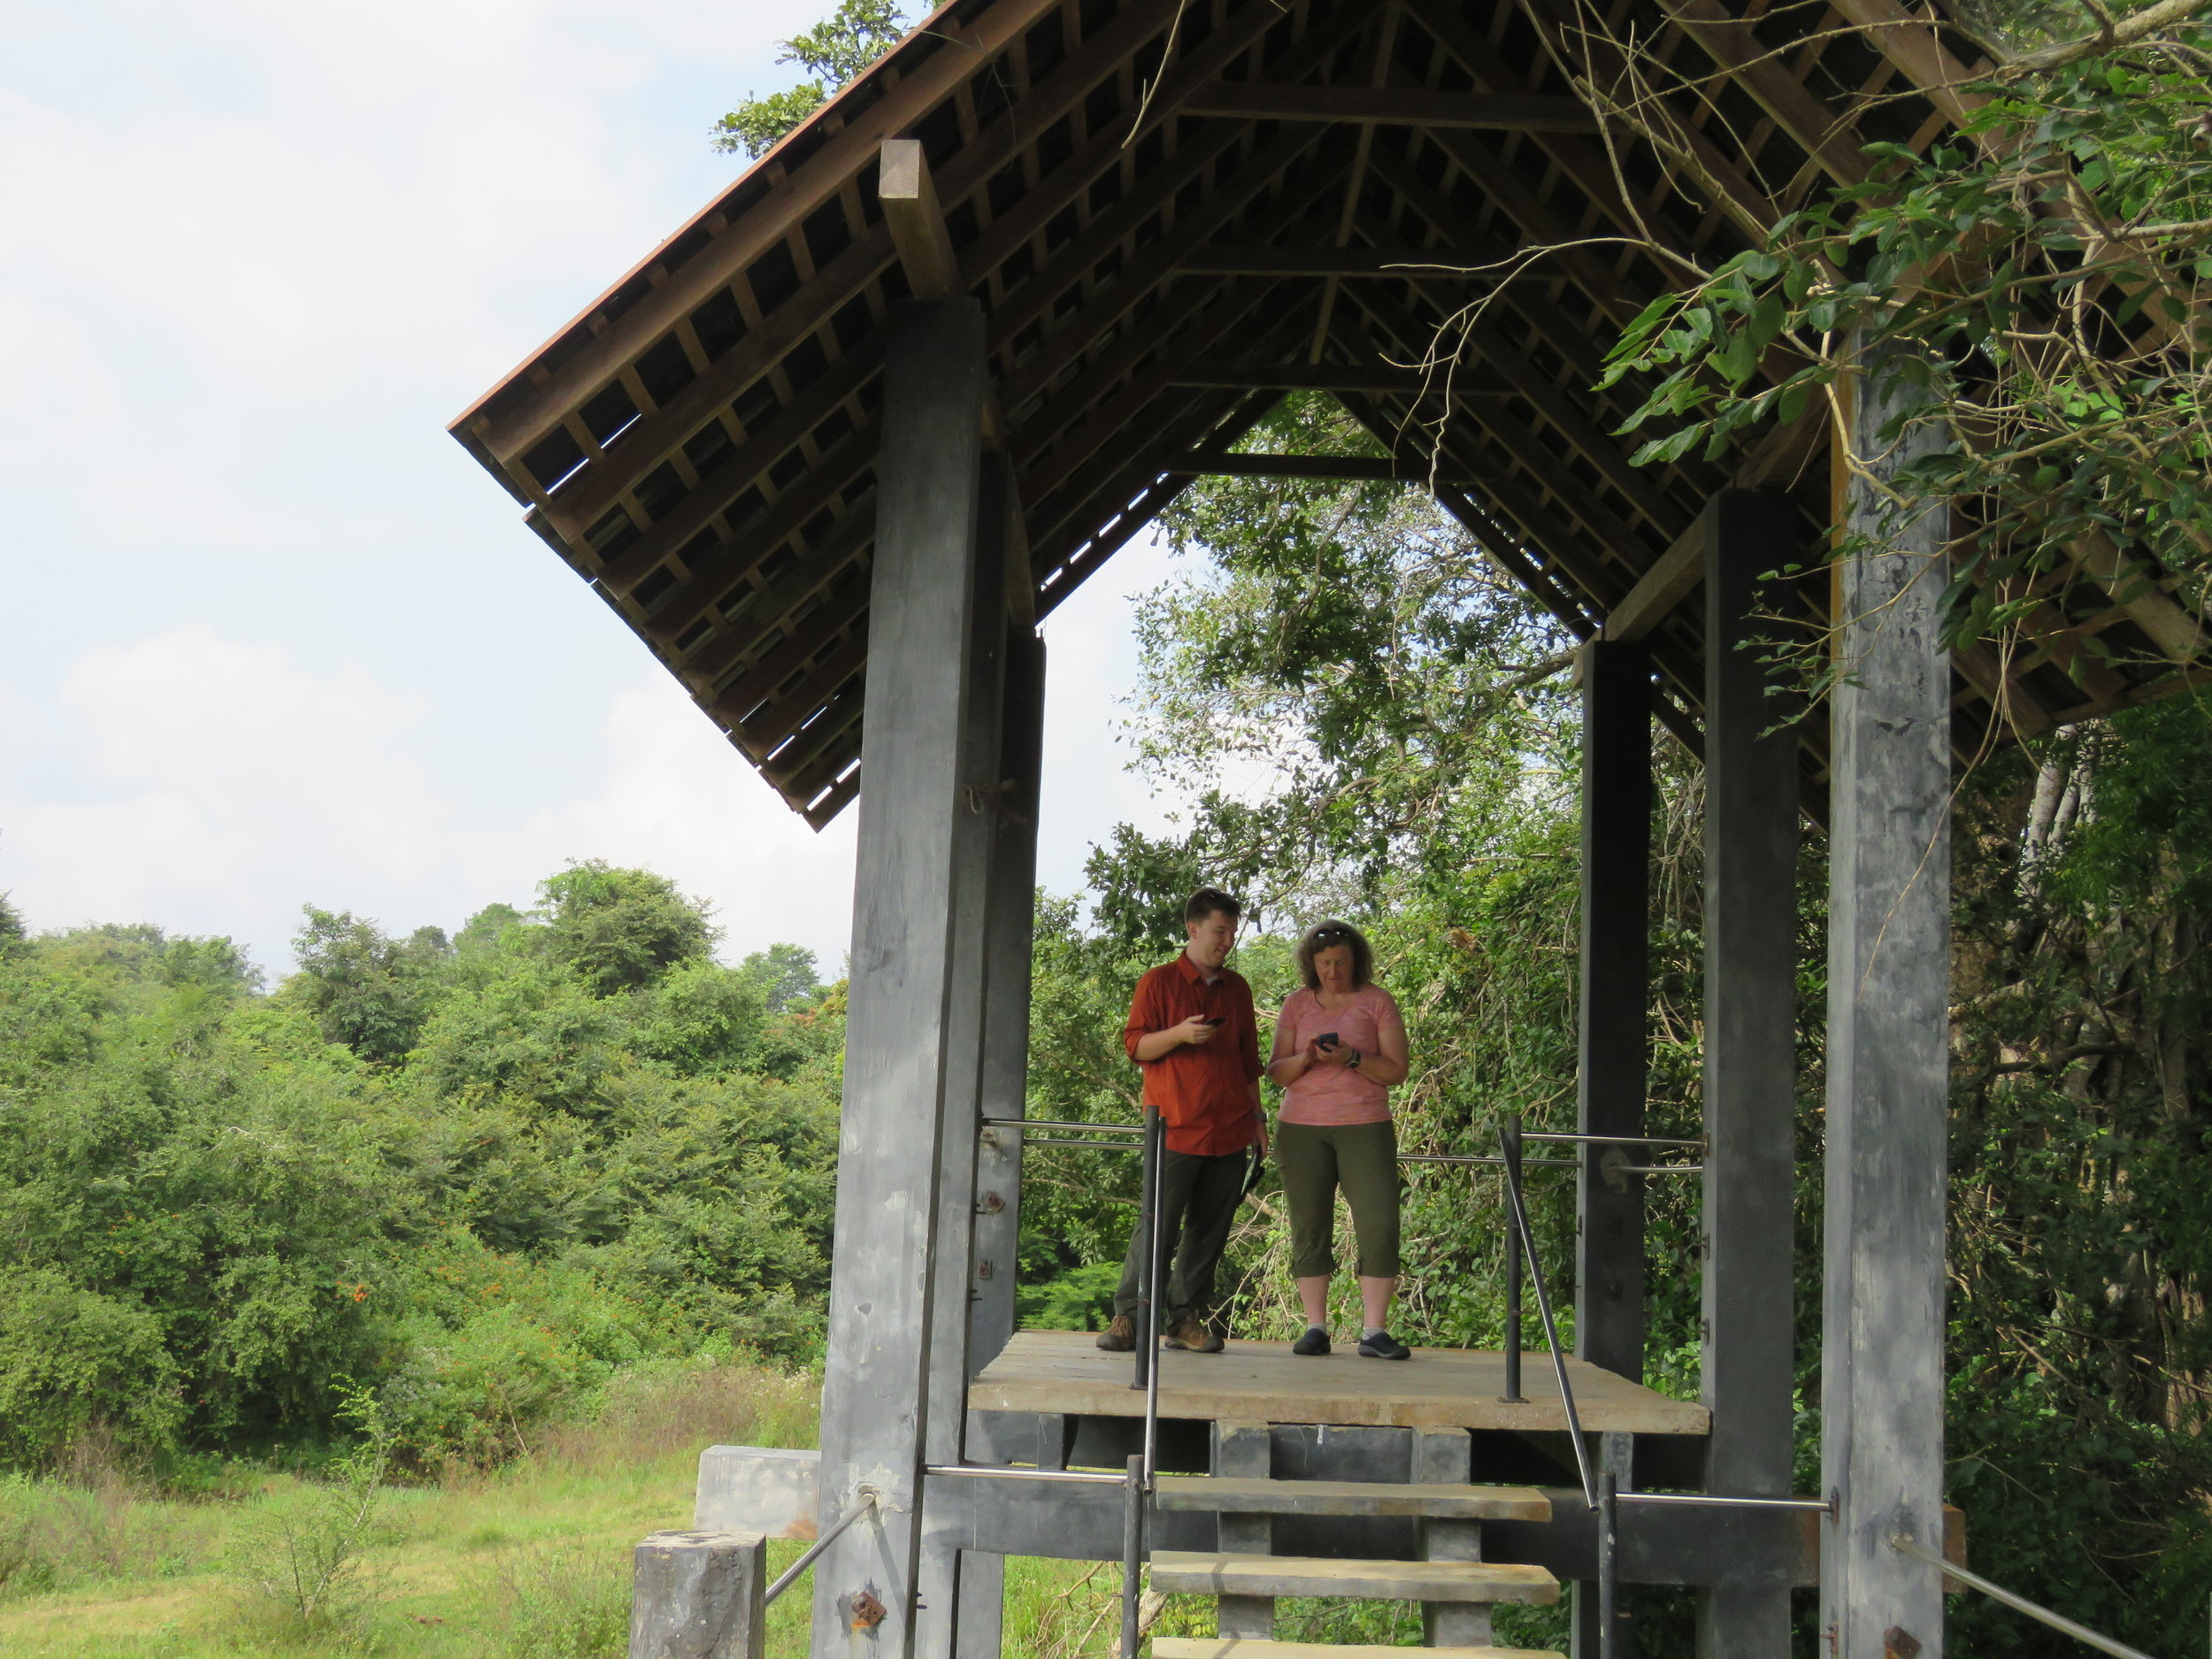 Elizabeth and me in the tower at Wasgamuwa, the best spot to get cellular signal to check emails from back home. Photo: Wendy Kiso.